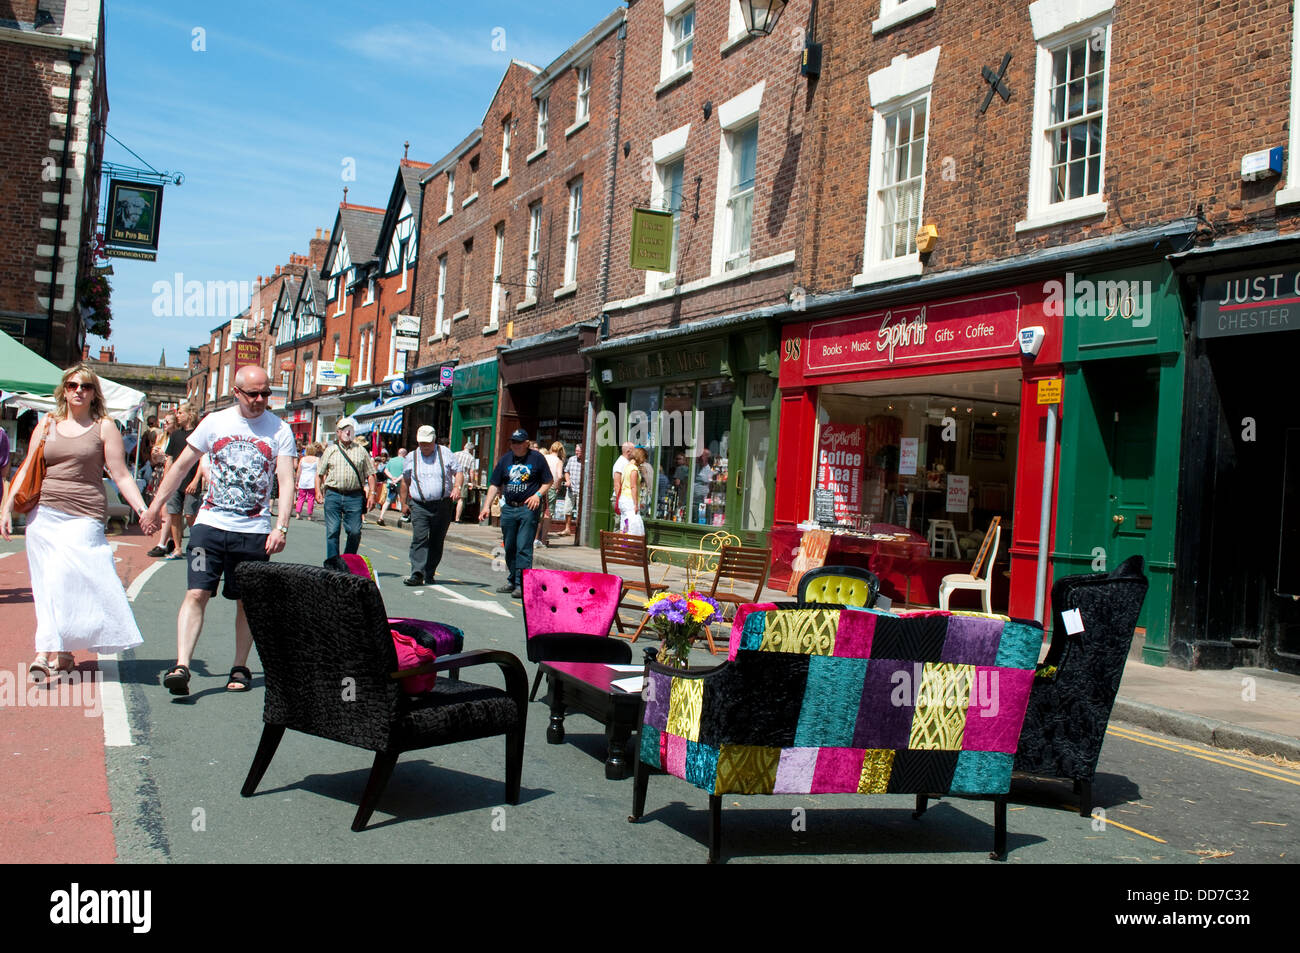 Antique furniture, Summer event, North Gate Street,, Chester, UK - Stock Image